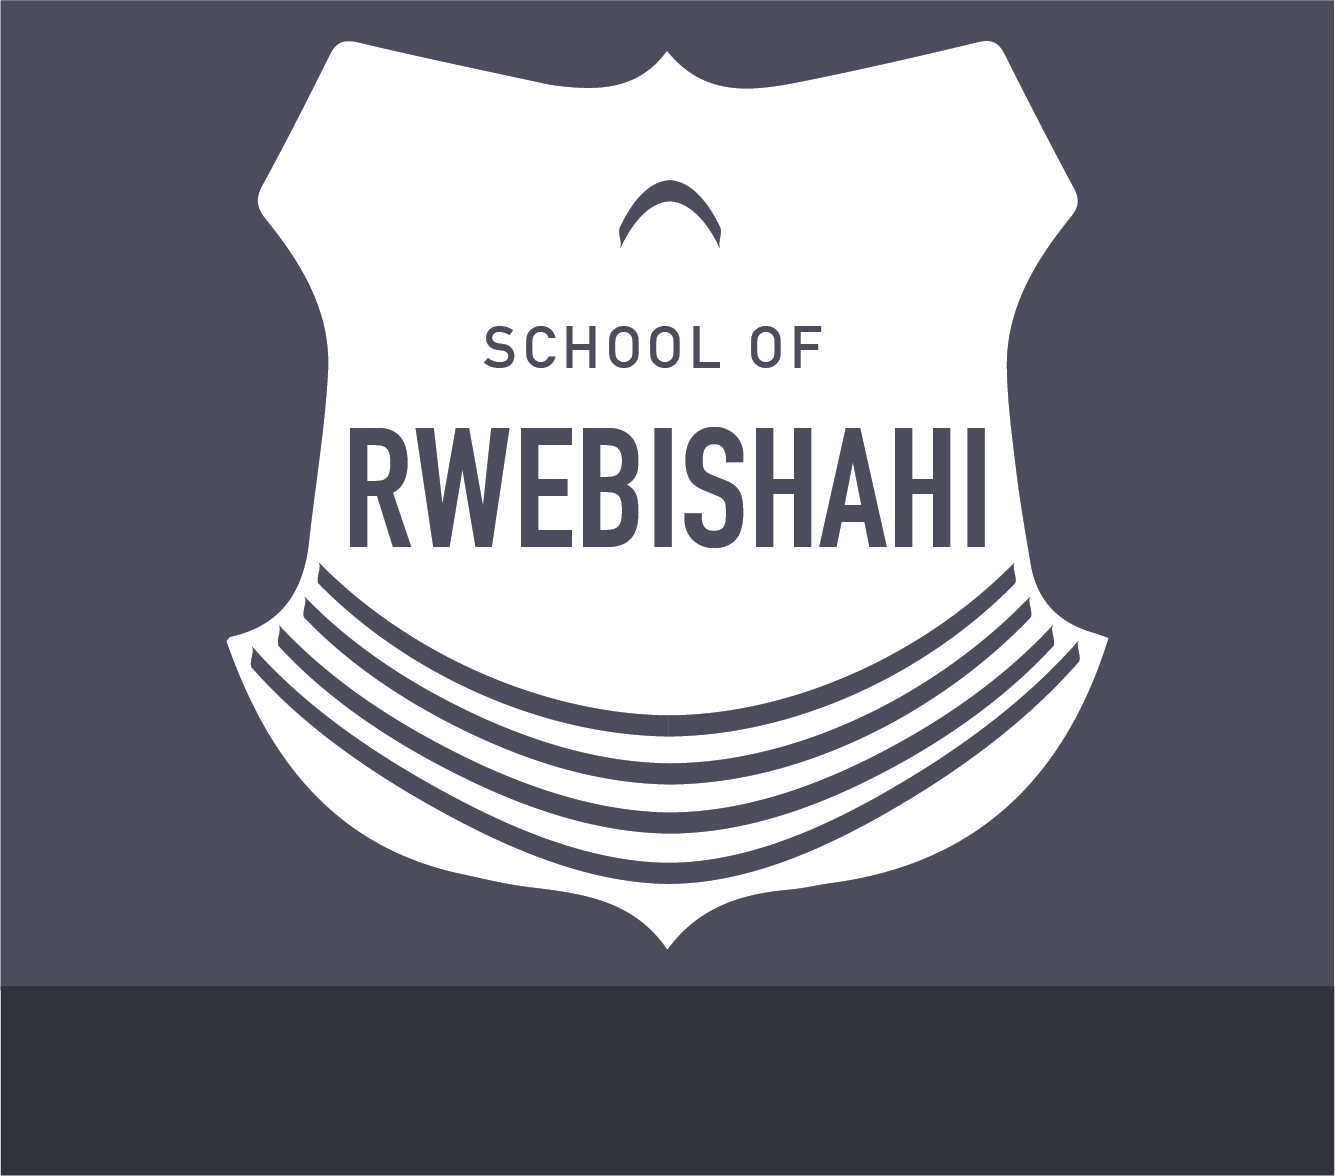 School of rwebishahi